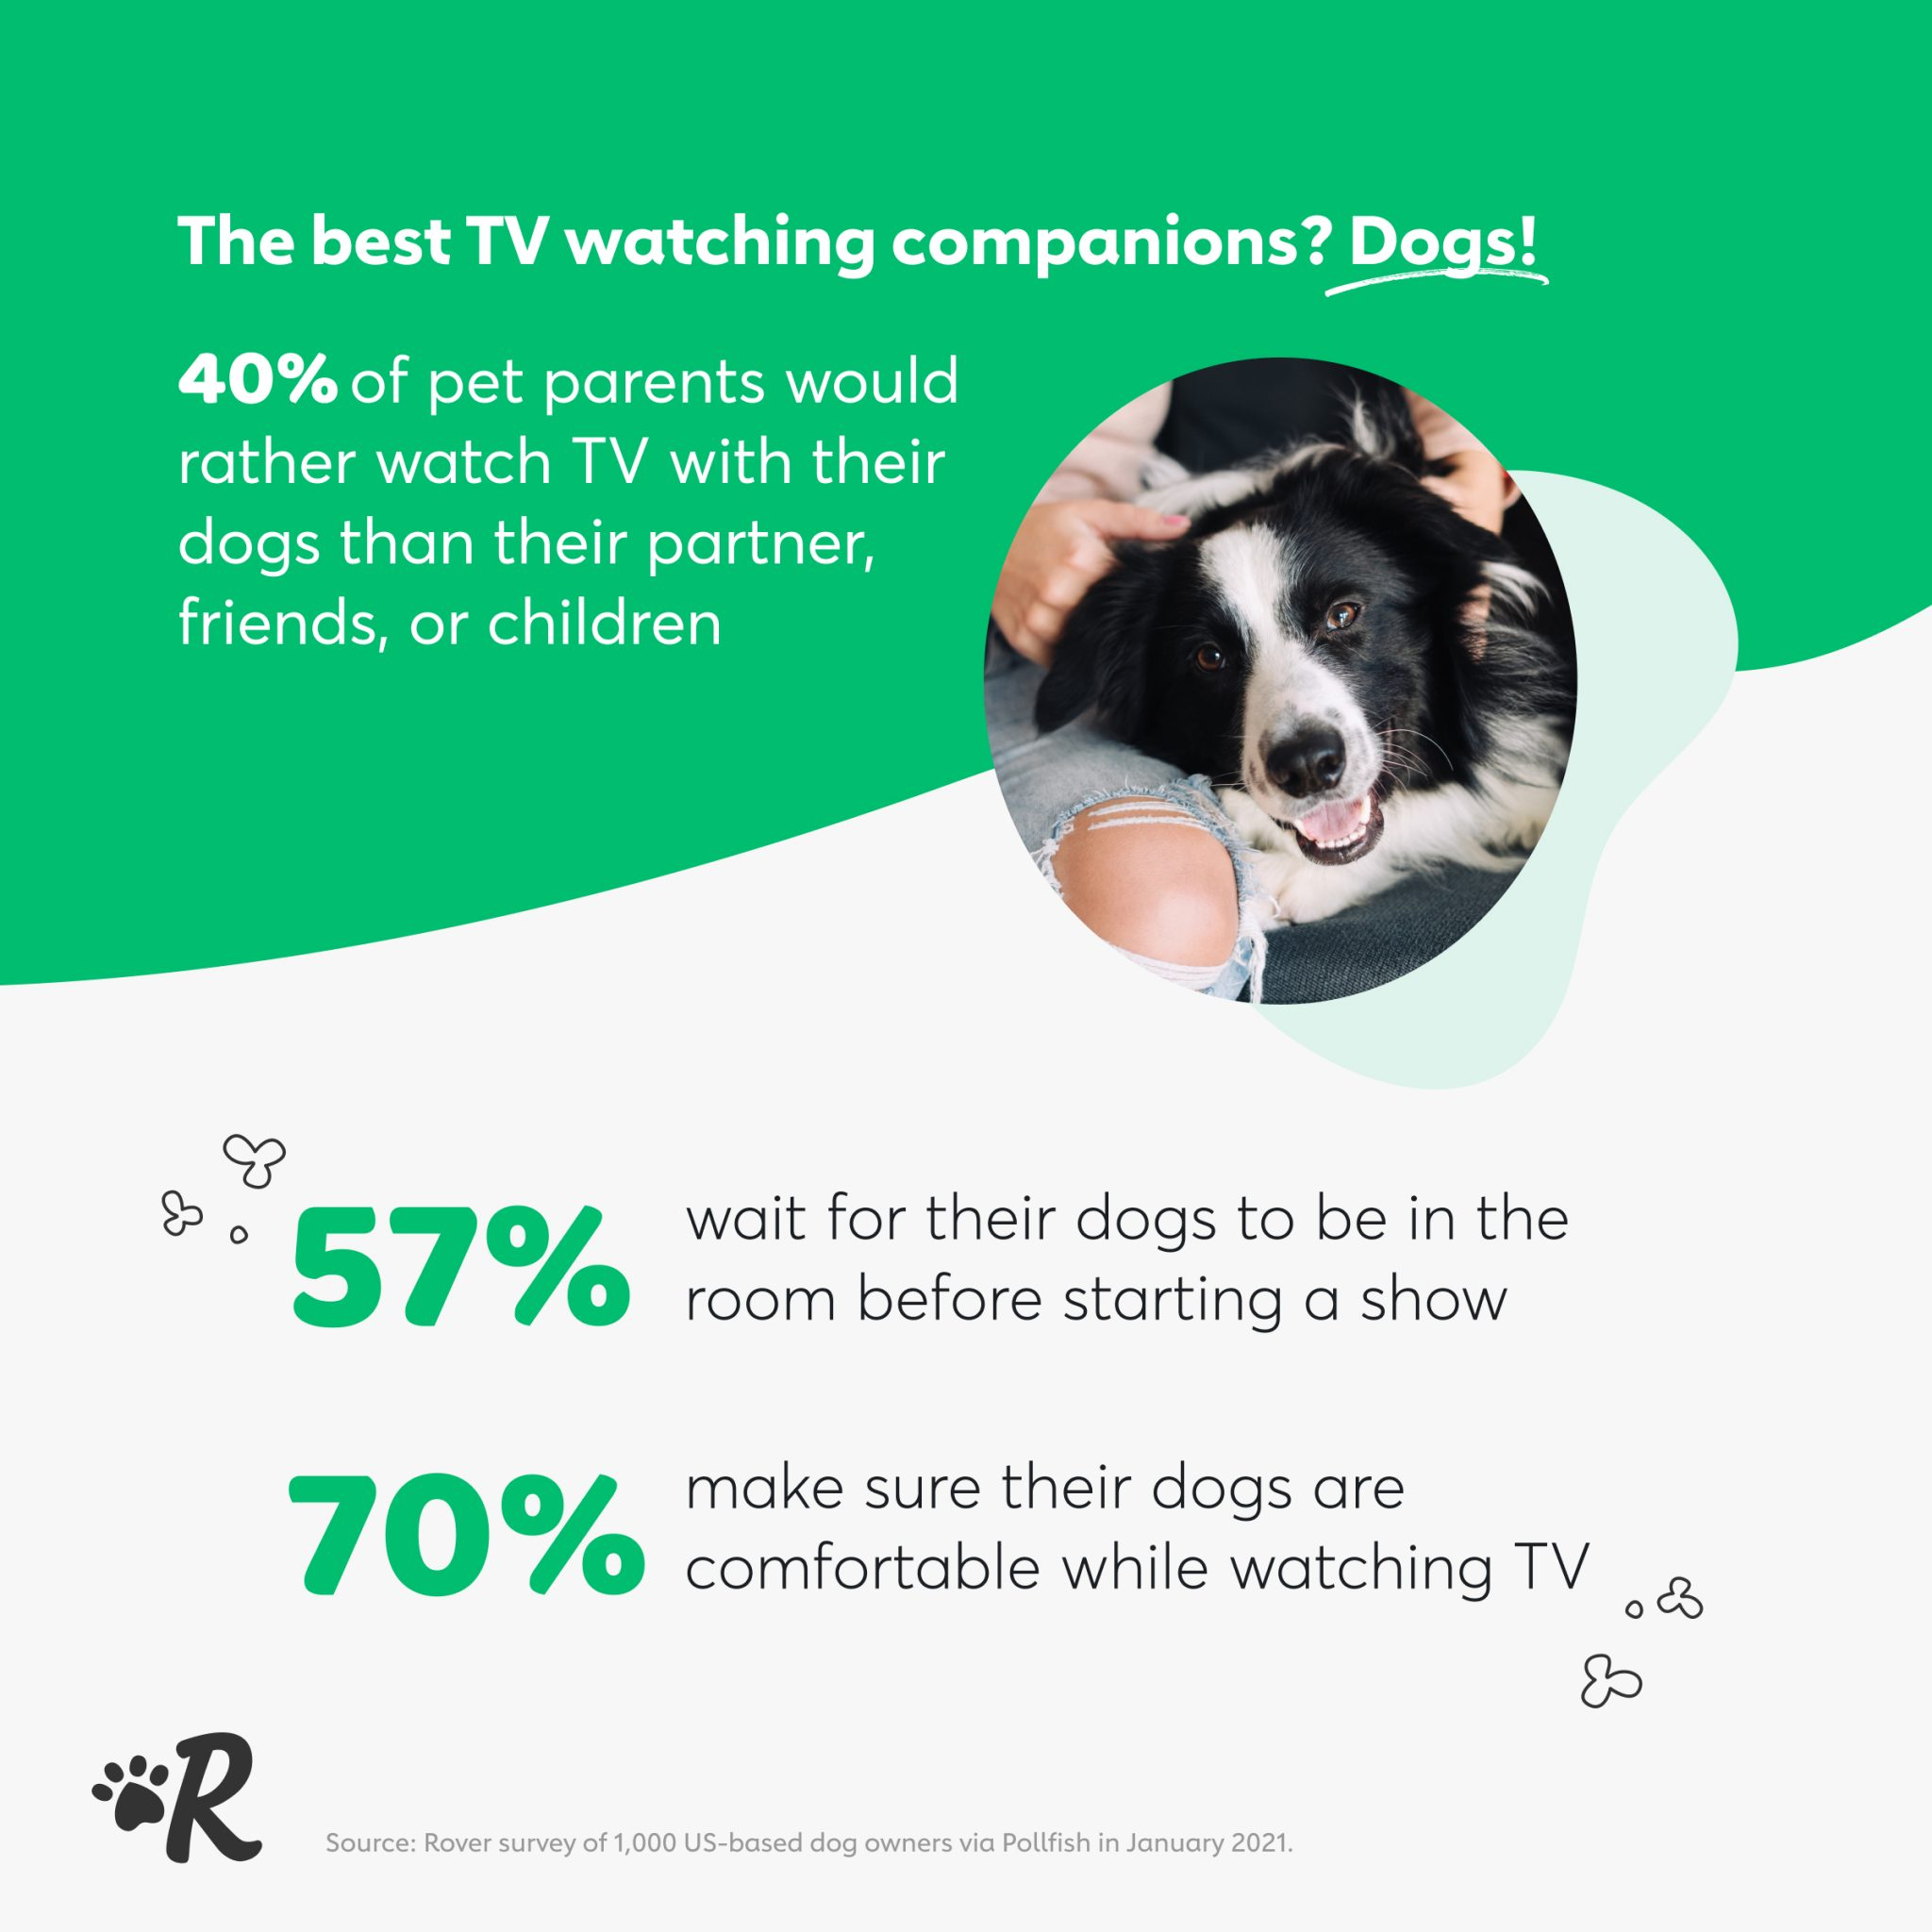 Infographic of survey data: 57% of dog owners wait for their dogs to be in the room before starting a show